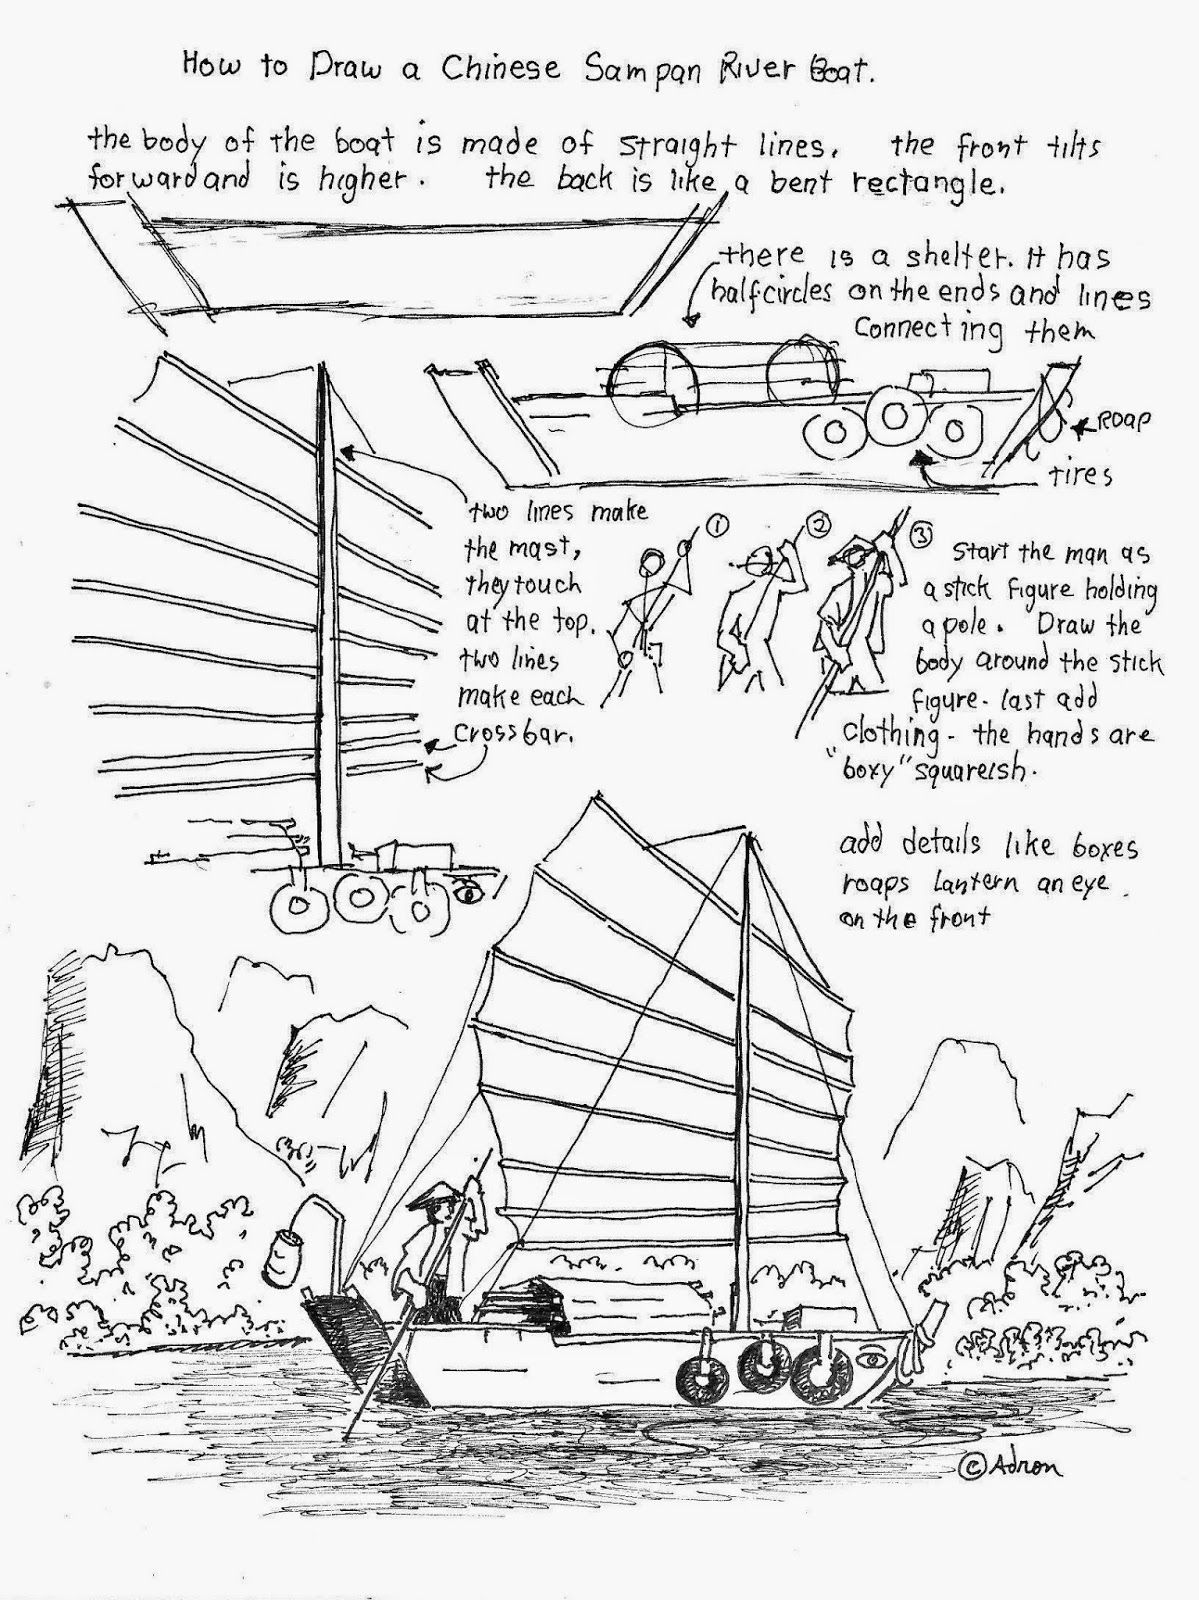 How To Draw A Chinese Sampan River Boat Free Drawing Worksheet How To Draw Worksheets For